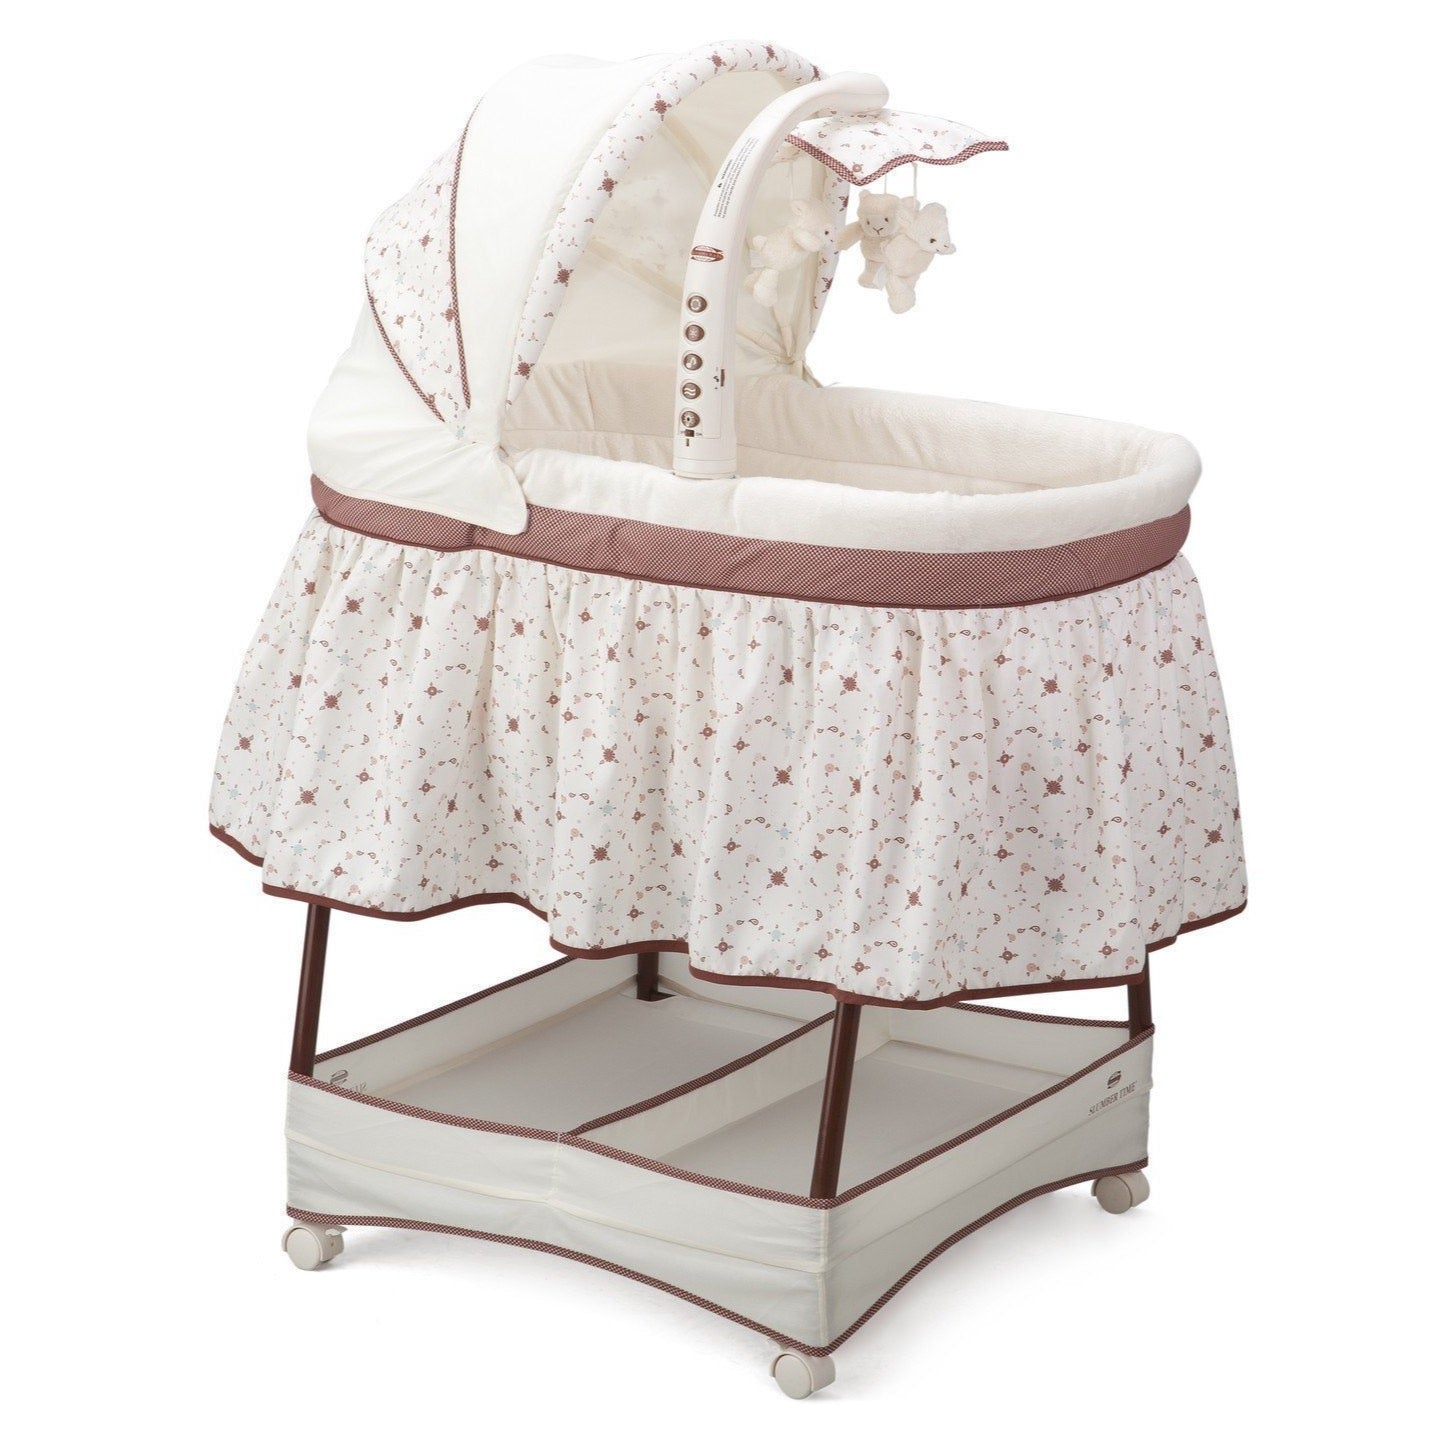 Delta Children Espresso Truffle (208) Slumber Time Elite Gliding Bassinet, Right Side View b1b